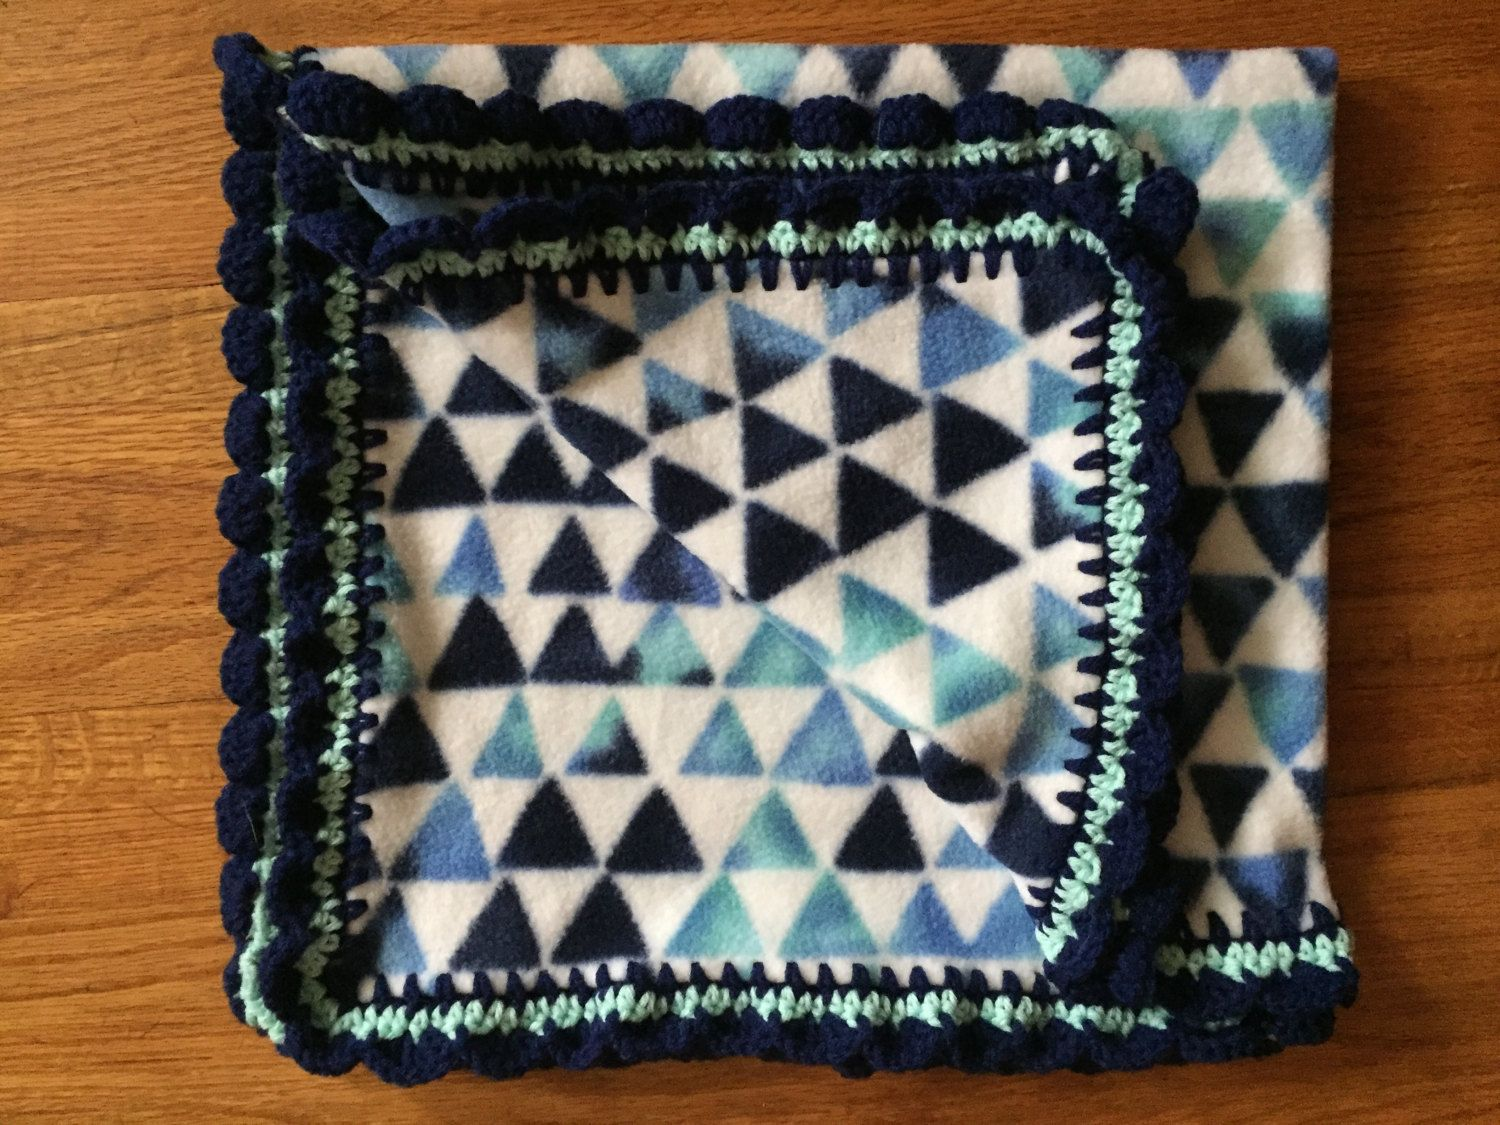 Blue Triangle Baby Blanket with Scalloped Edging, fleece baby blanket, crochet edge blanket, crochet baby blanket, stroller blanket by StitchesBySullivan on Etsy